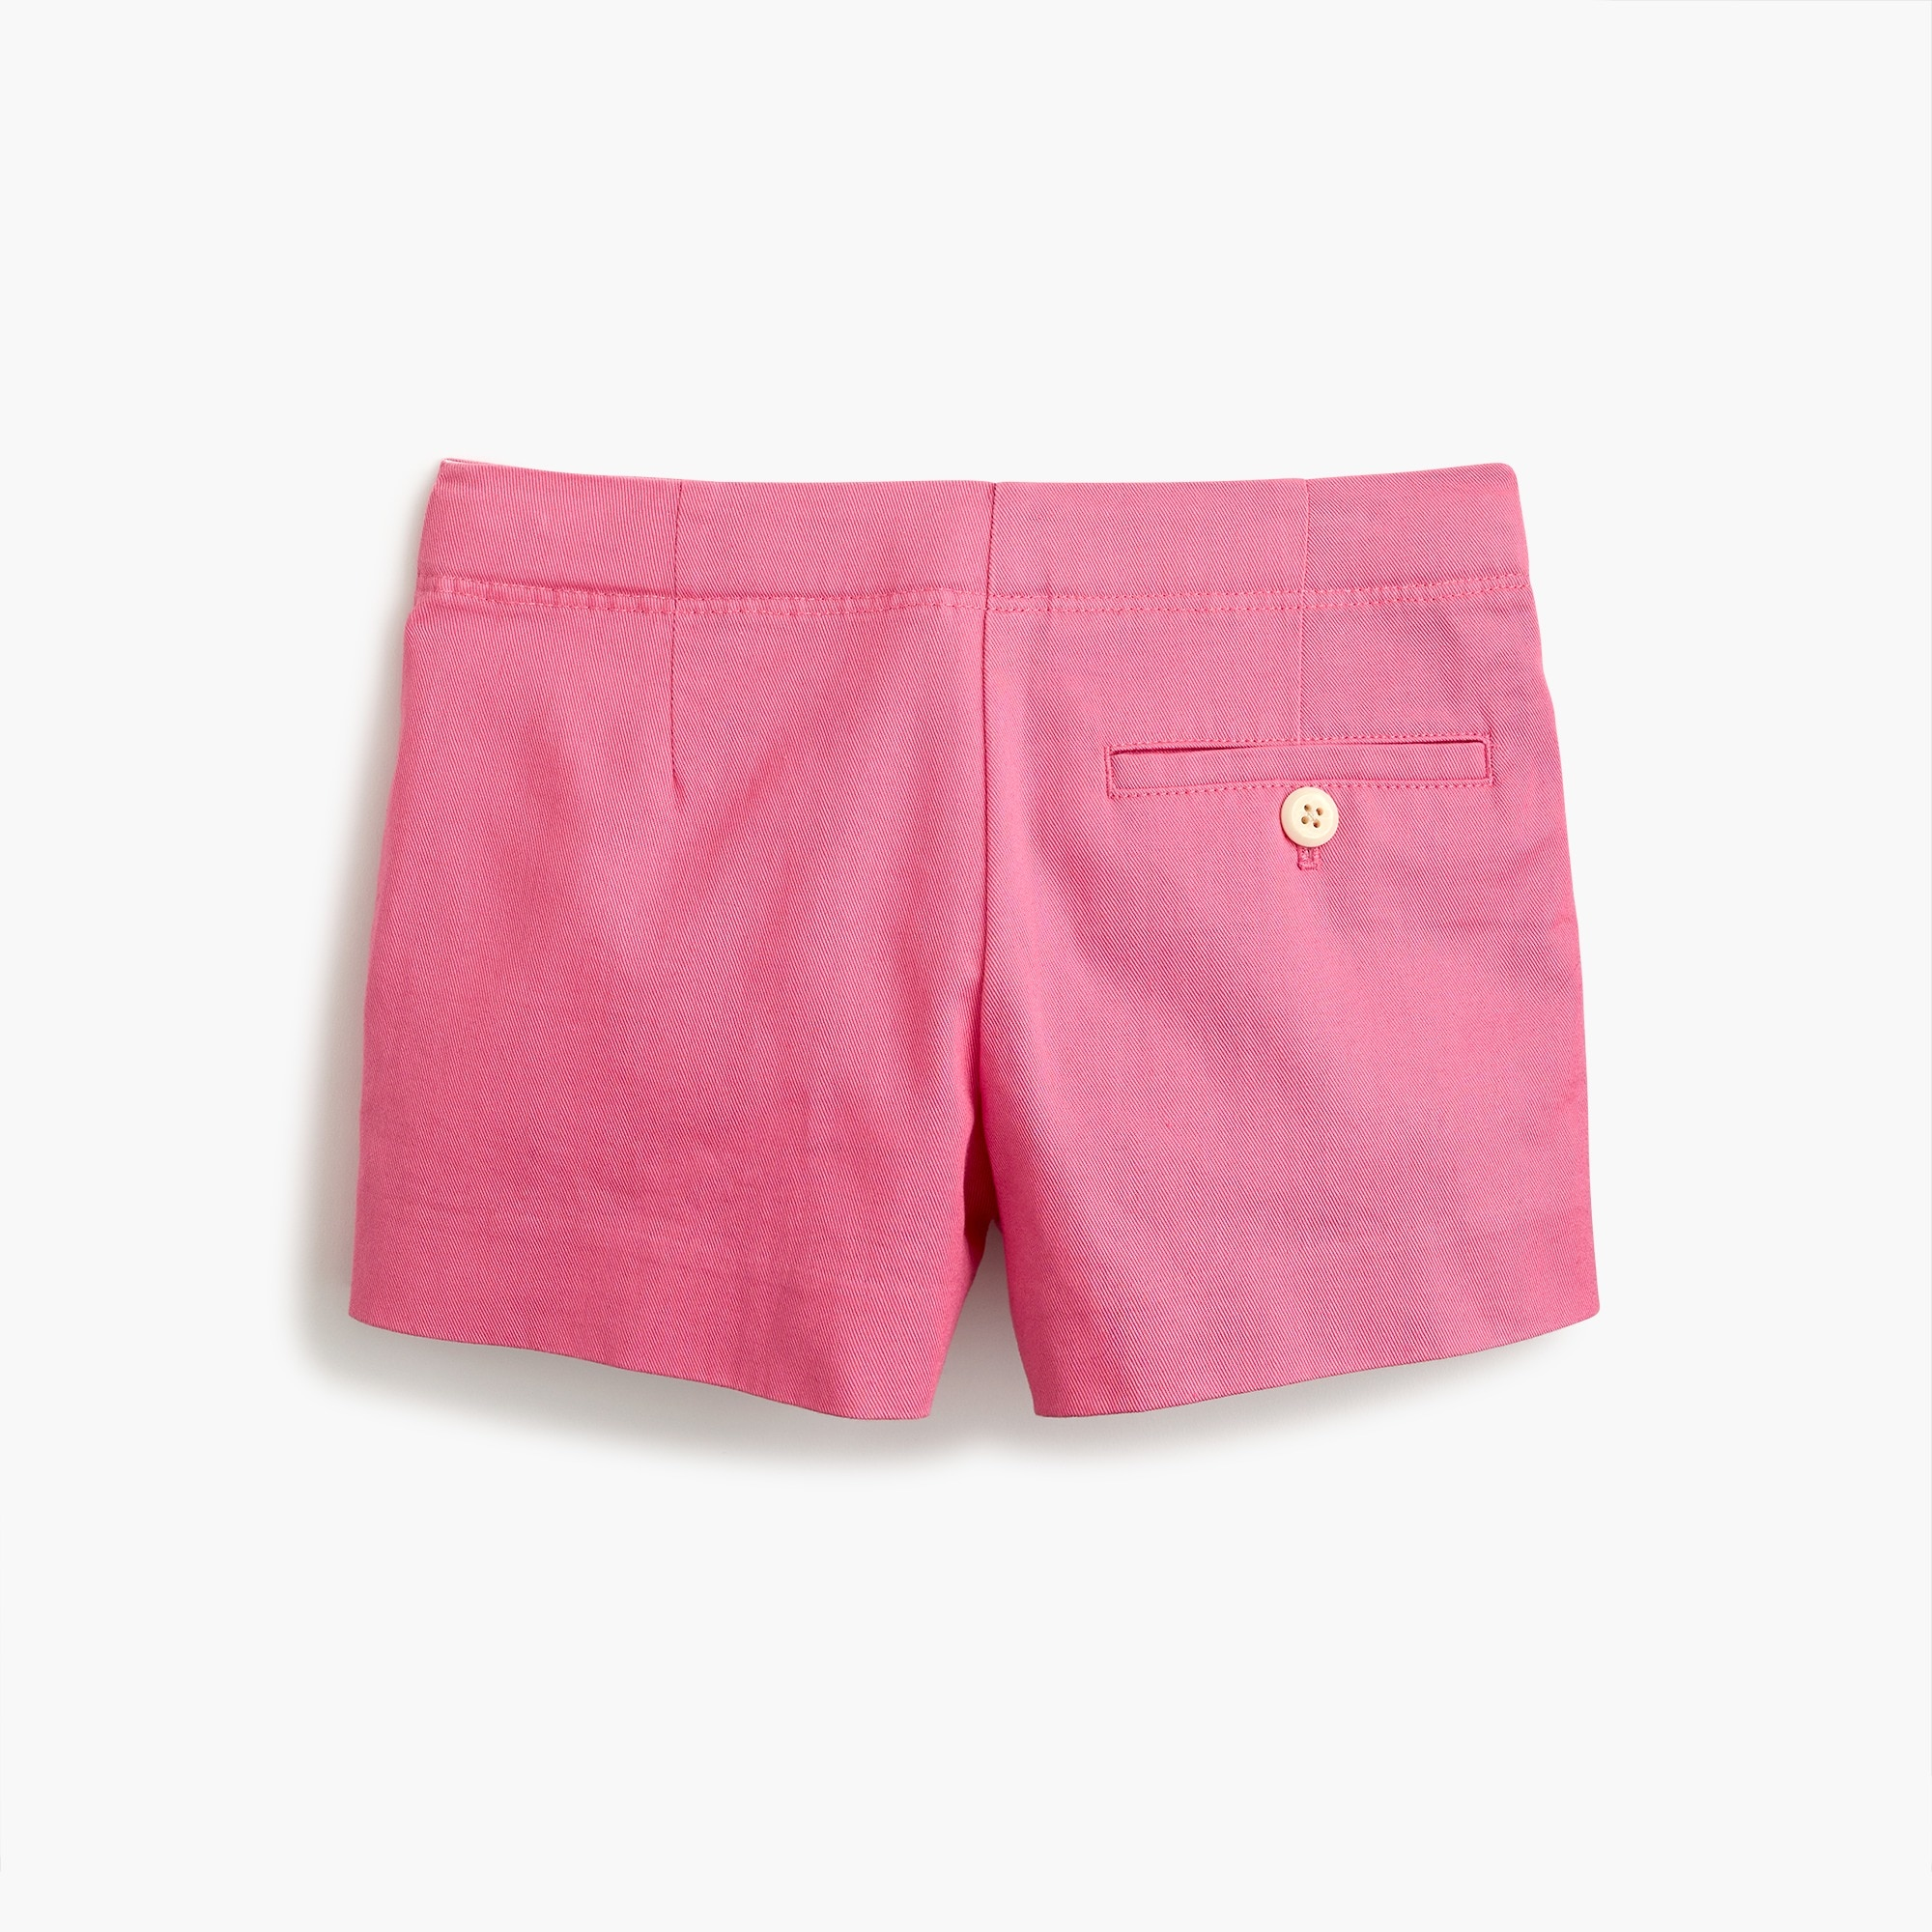 Image 2 for Girls' chino short